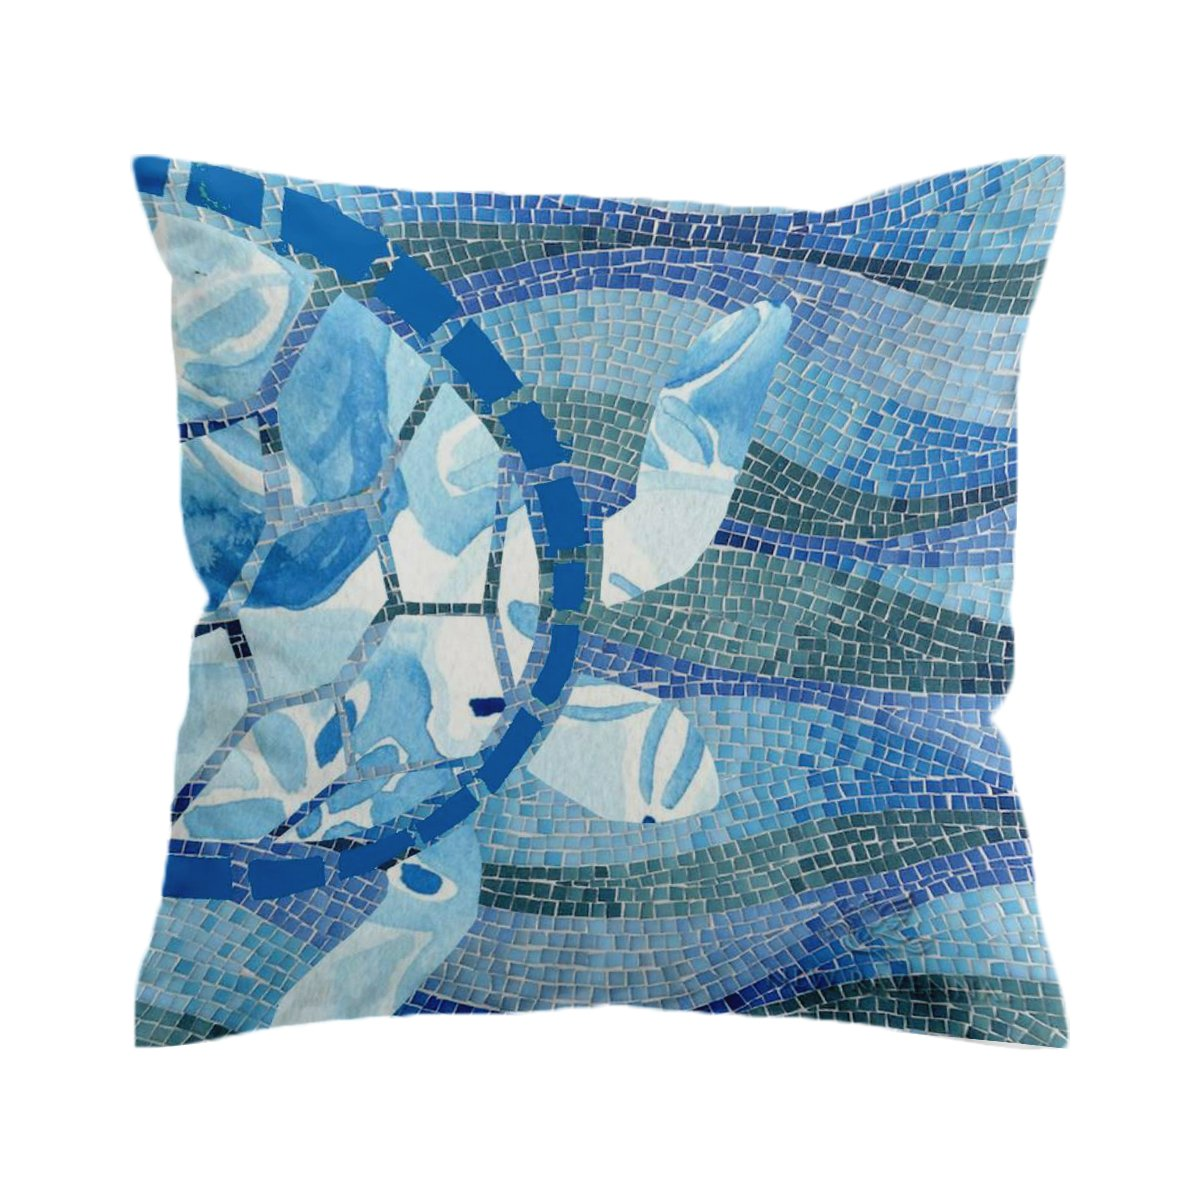 Sea Turtle Mosaic Pillow Cover-Coastal Passion